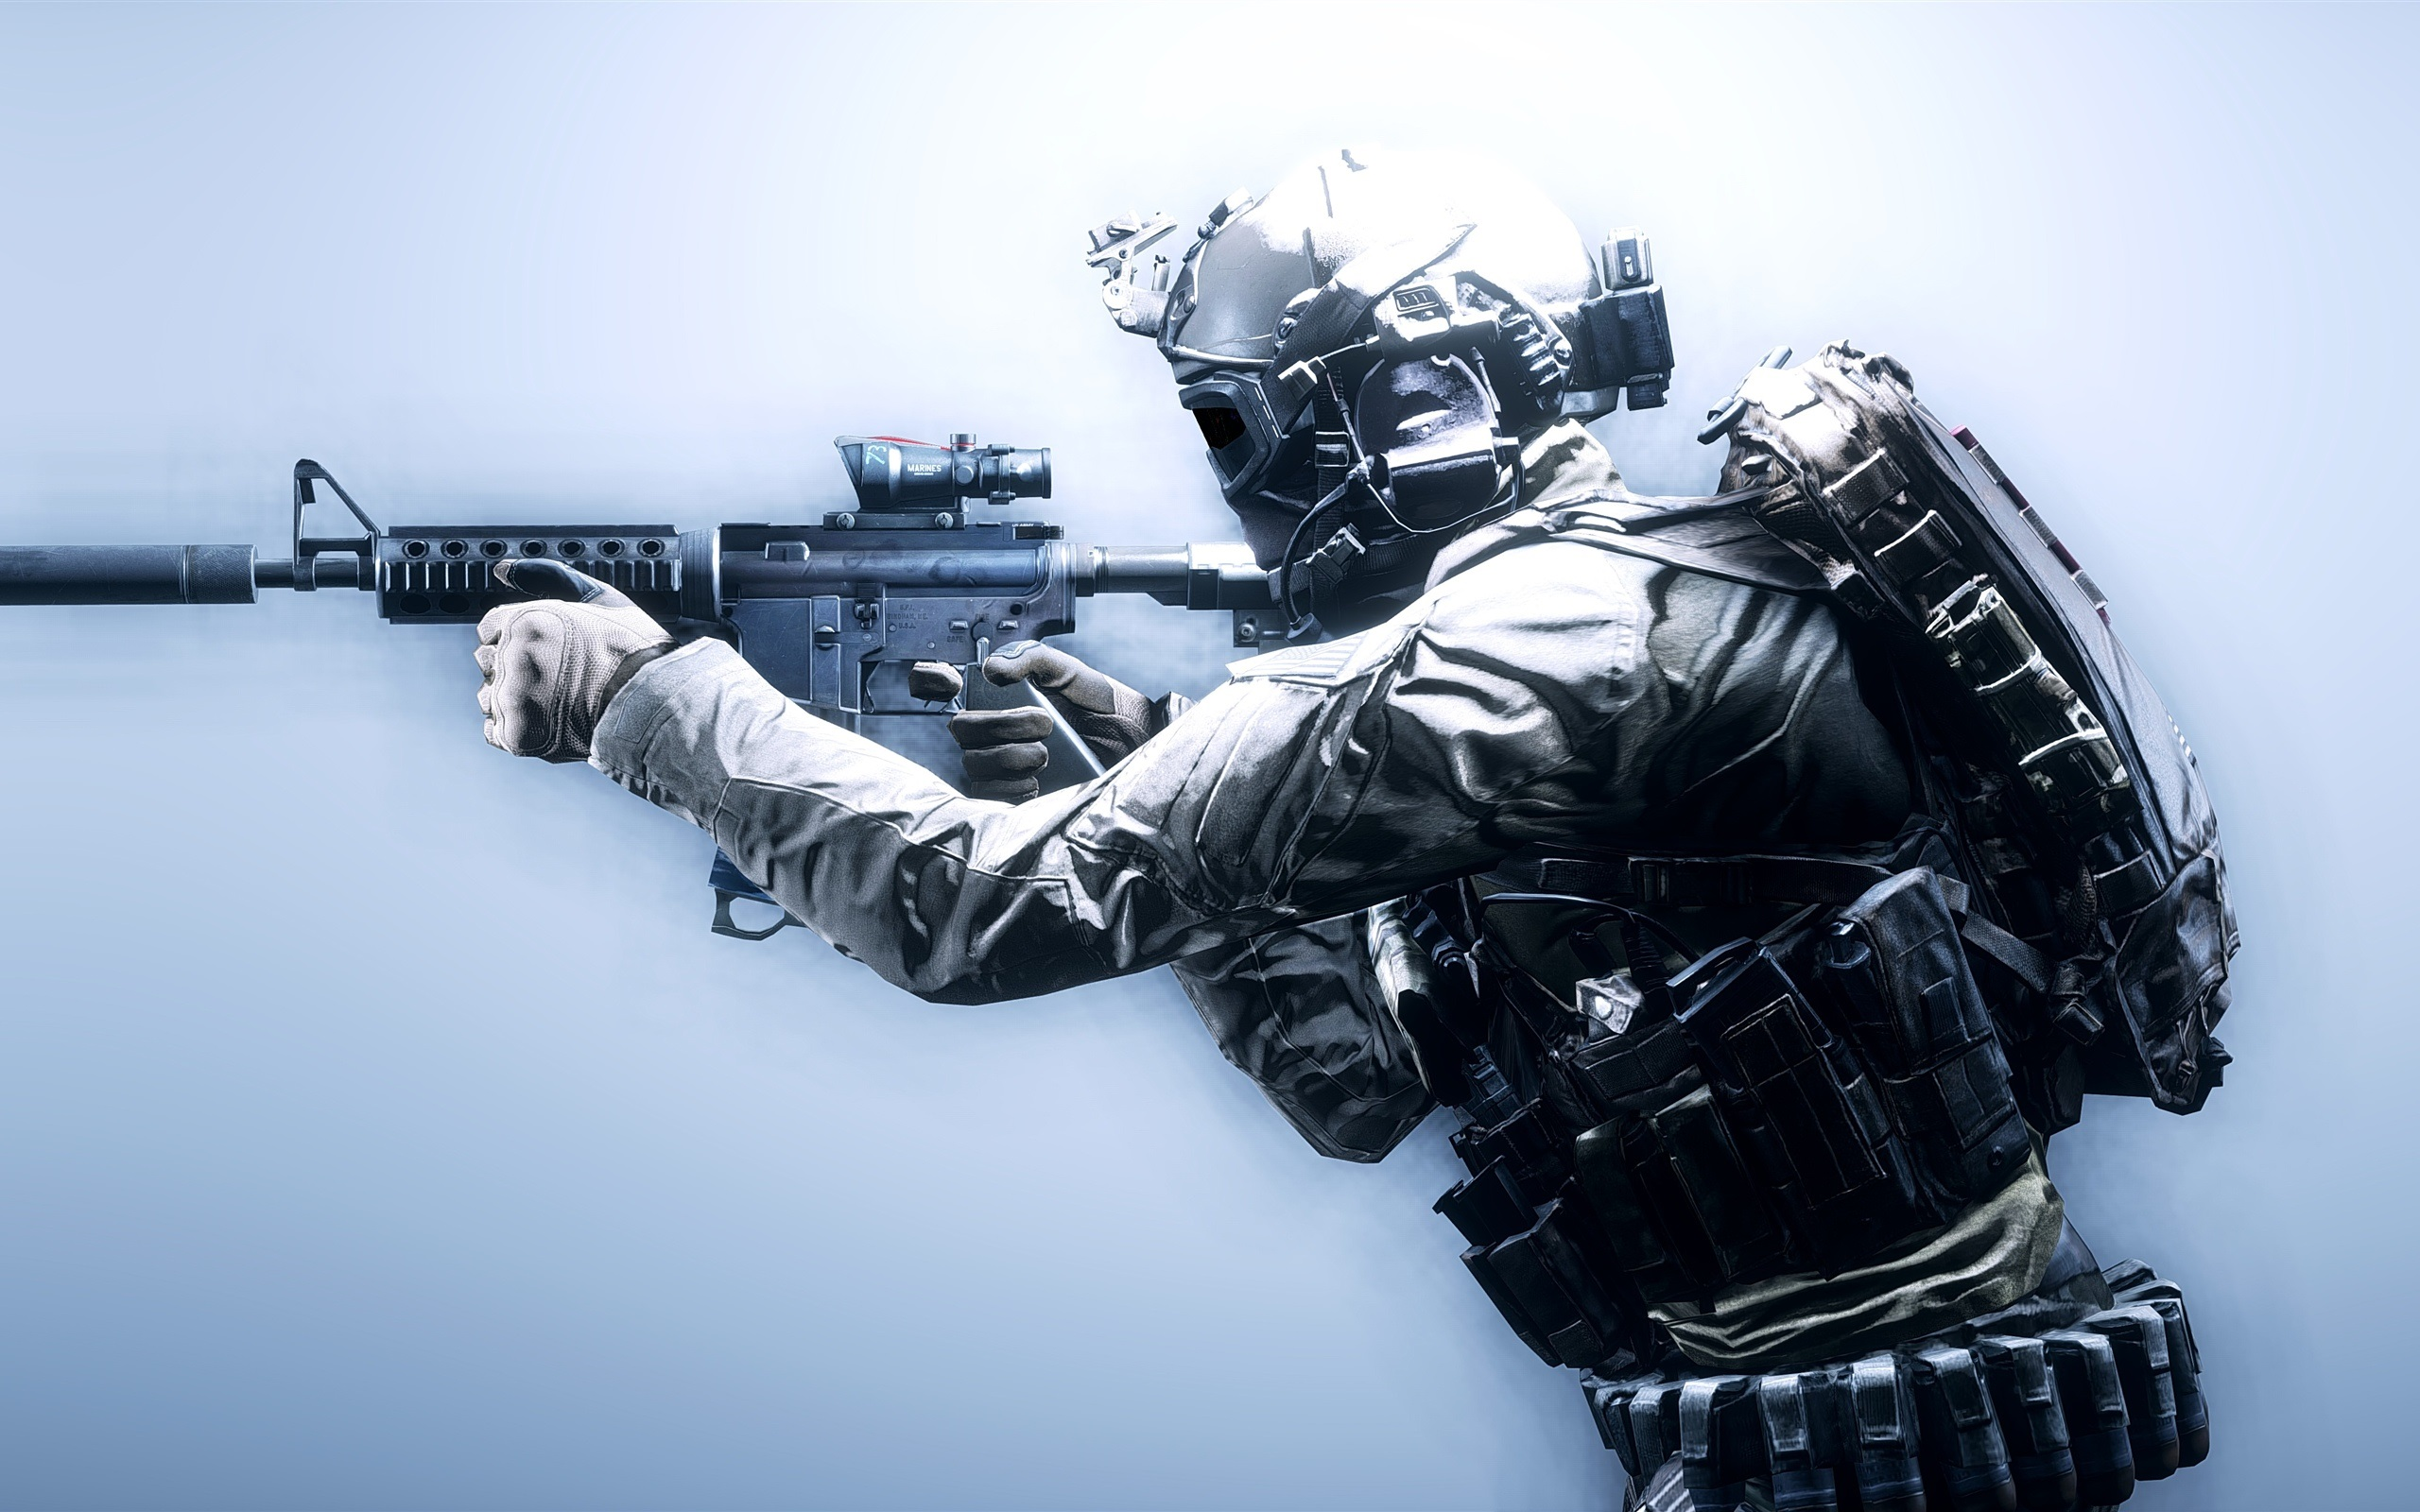 Wallpaper Battlefield 4 Soldiers Weapons 2560x1600 HD Picture Image